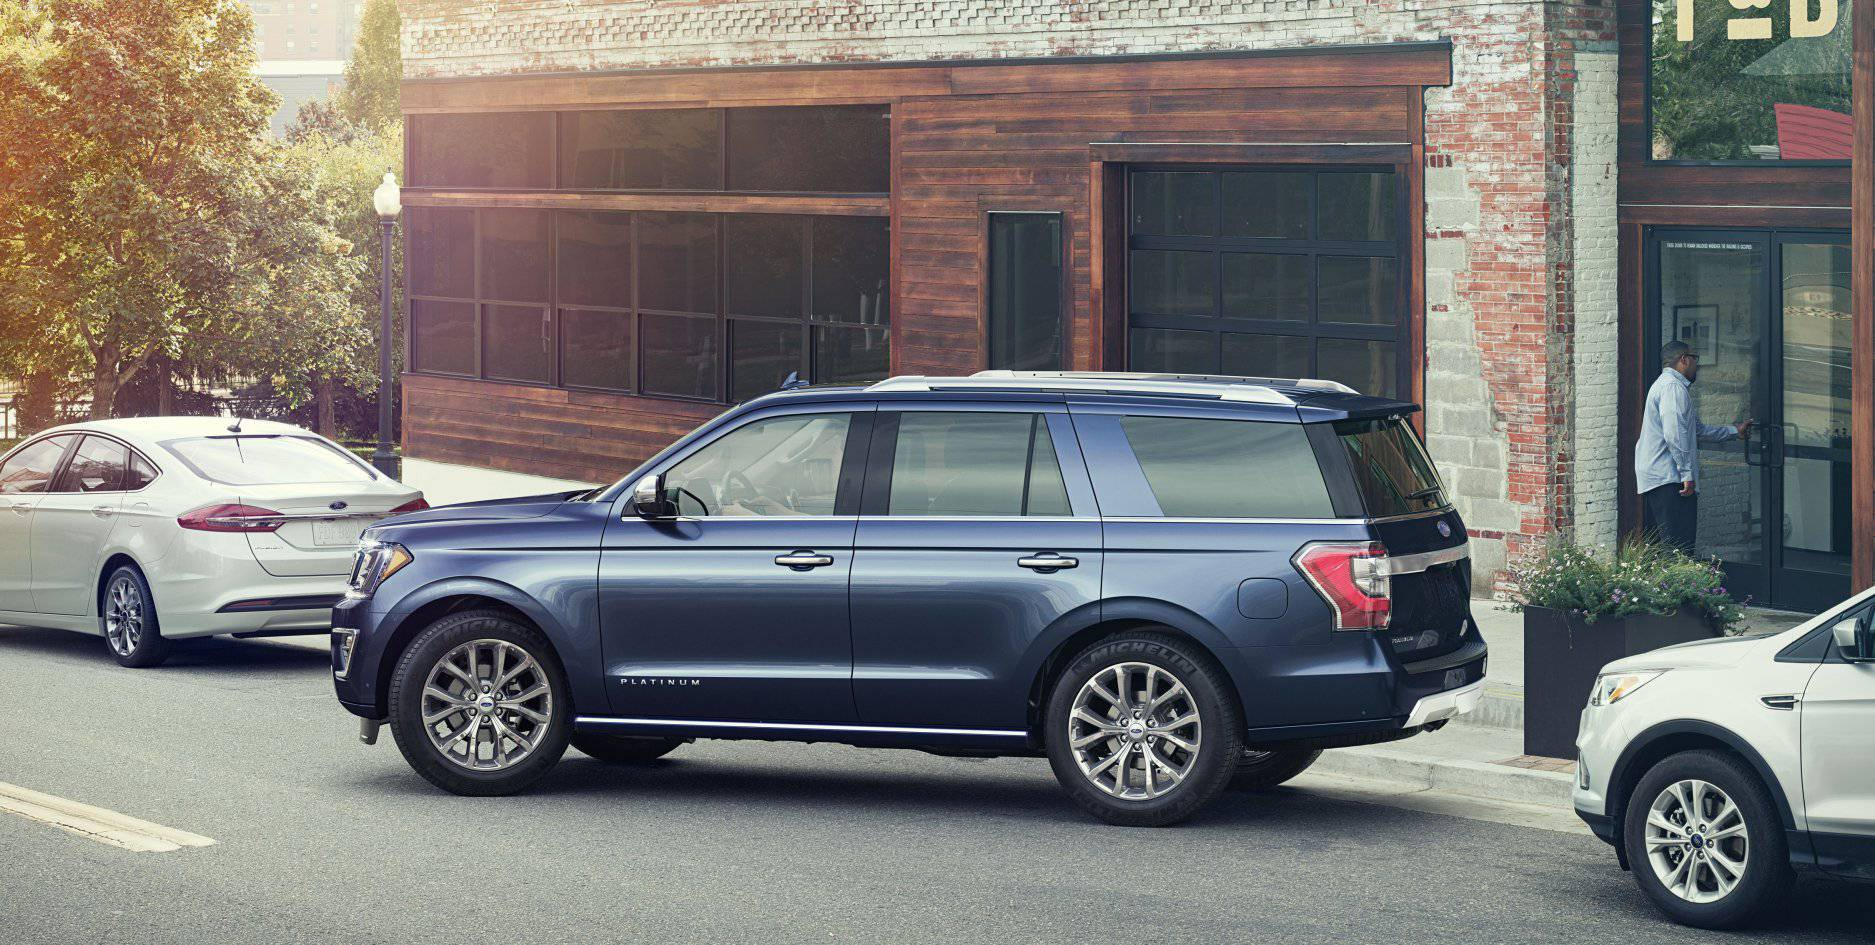 2018 Ford Expedition Blue Exterior Park Assist